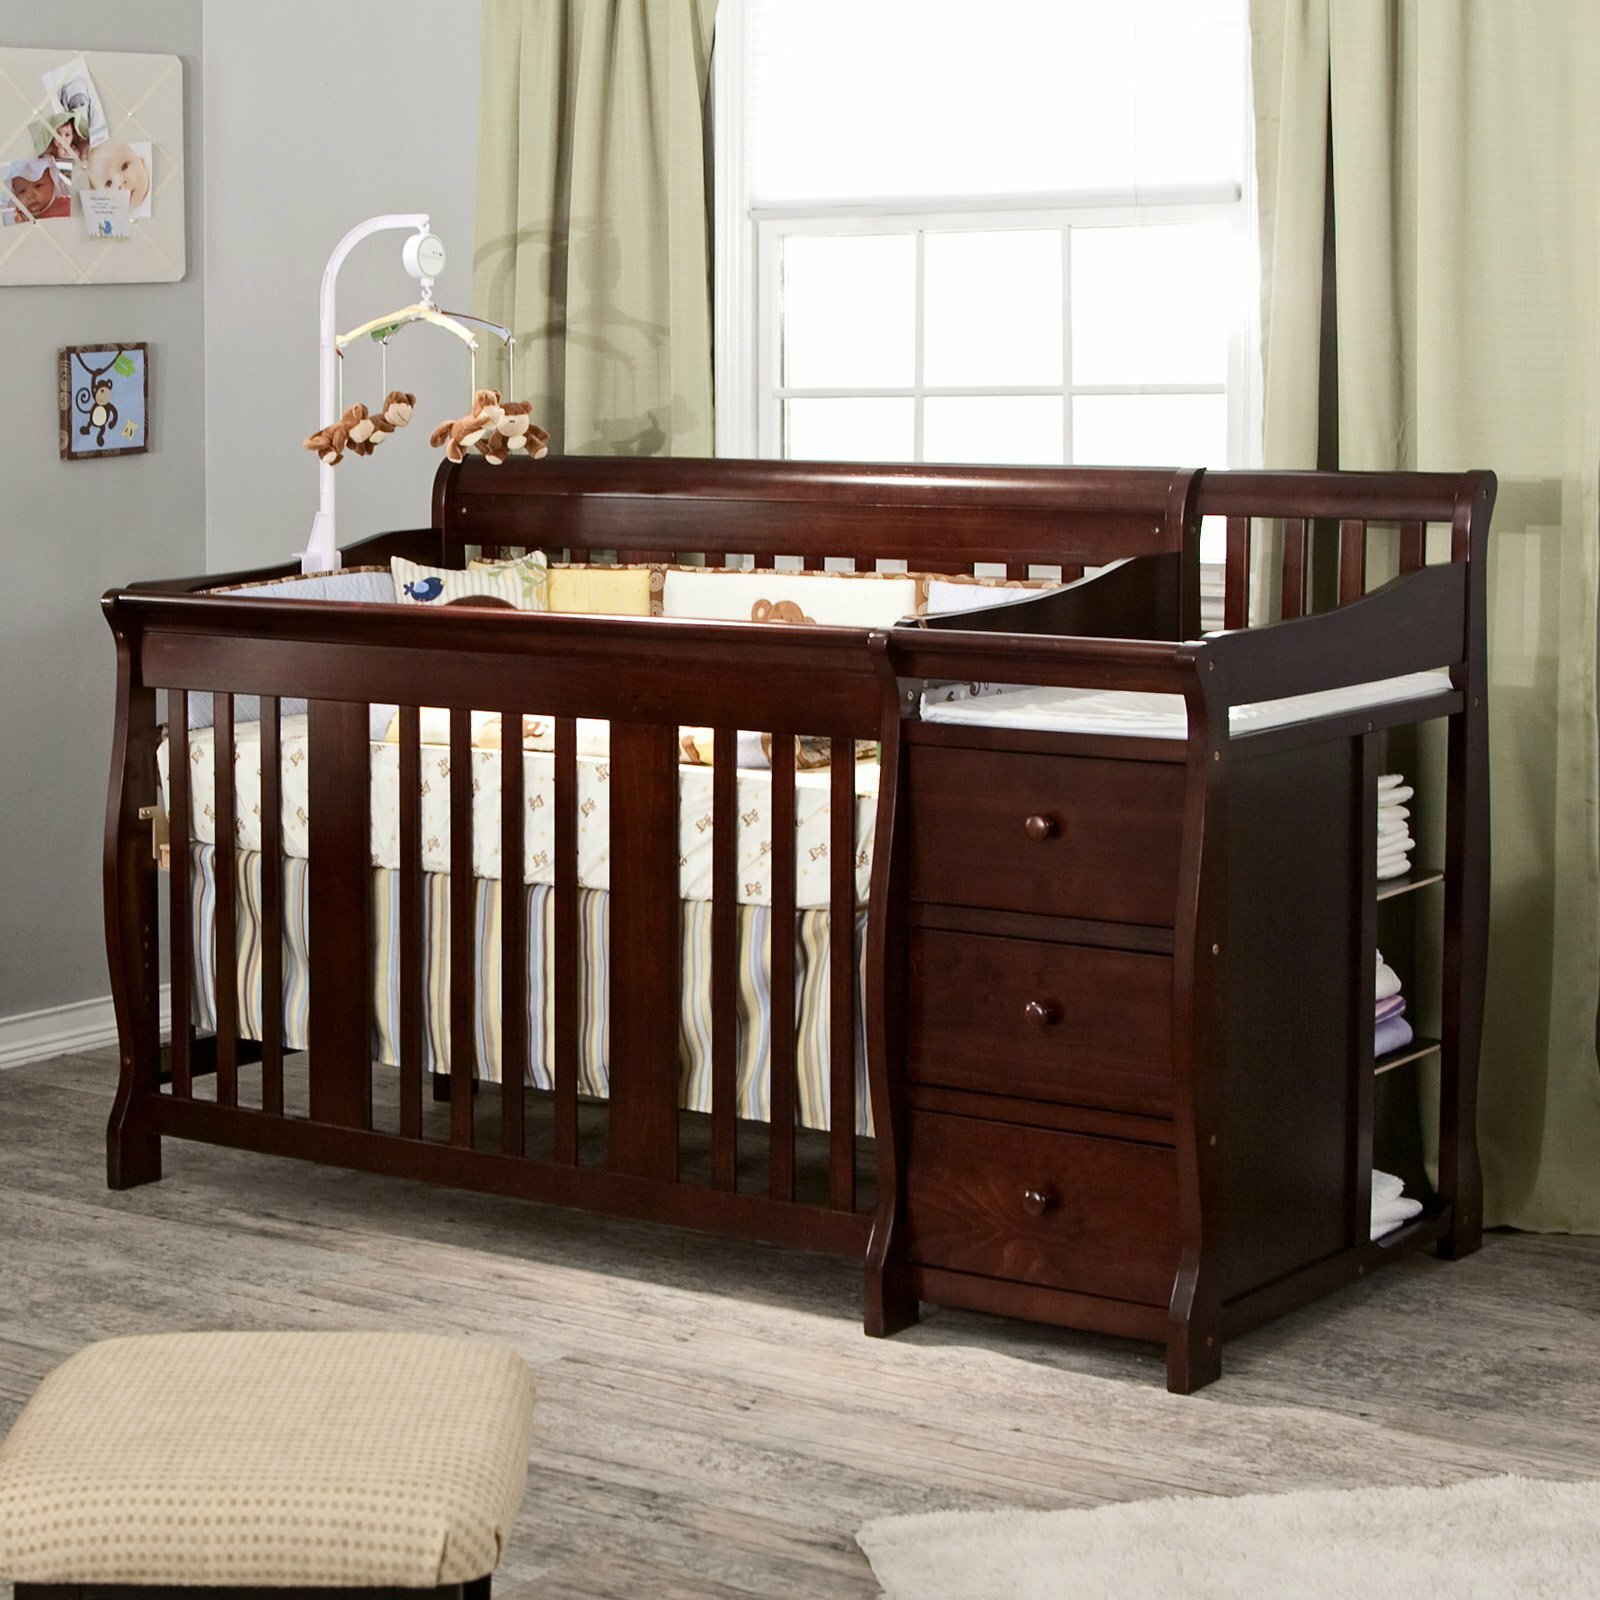 4 In 1 Side Convertible Crib Changer Nursery Furniture